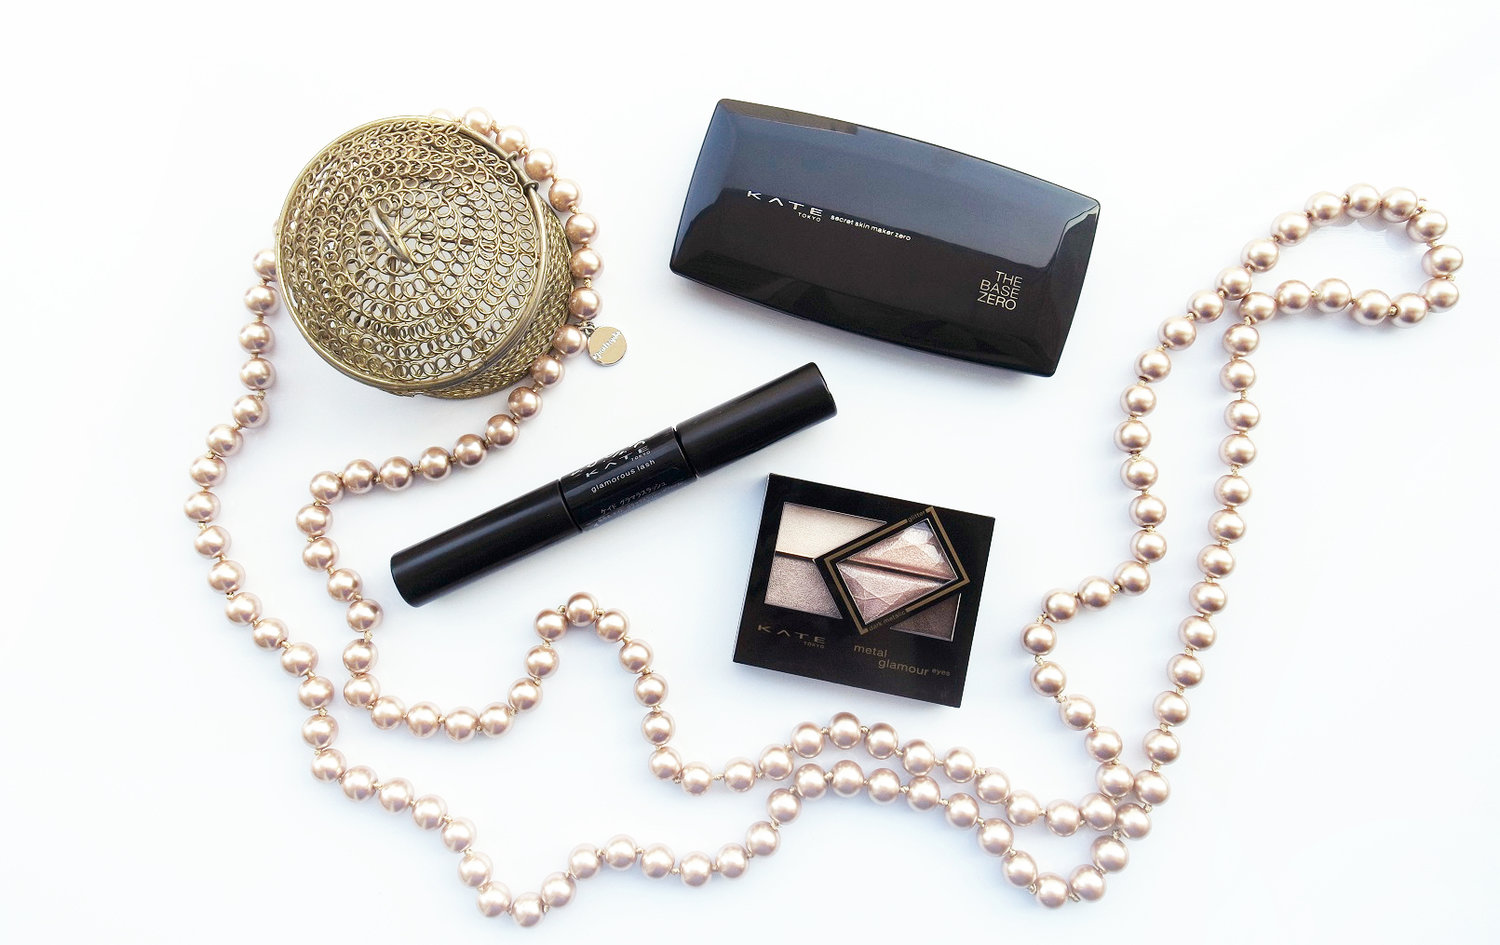 J-Beauty Love: My three favorite things from Kate Tokyo's new collection